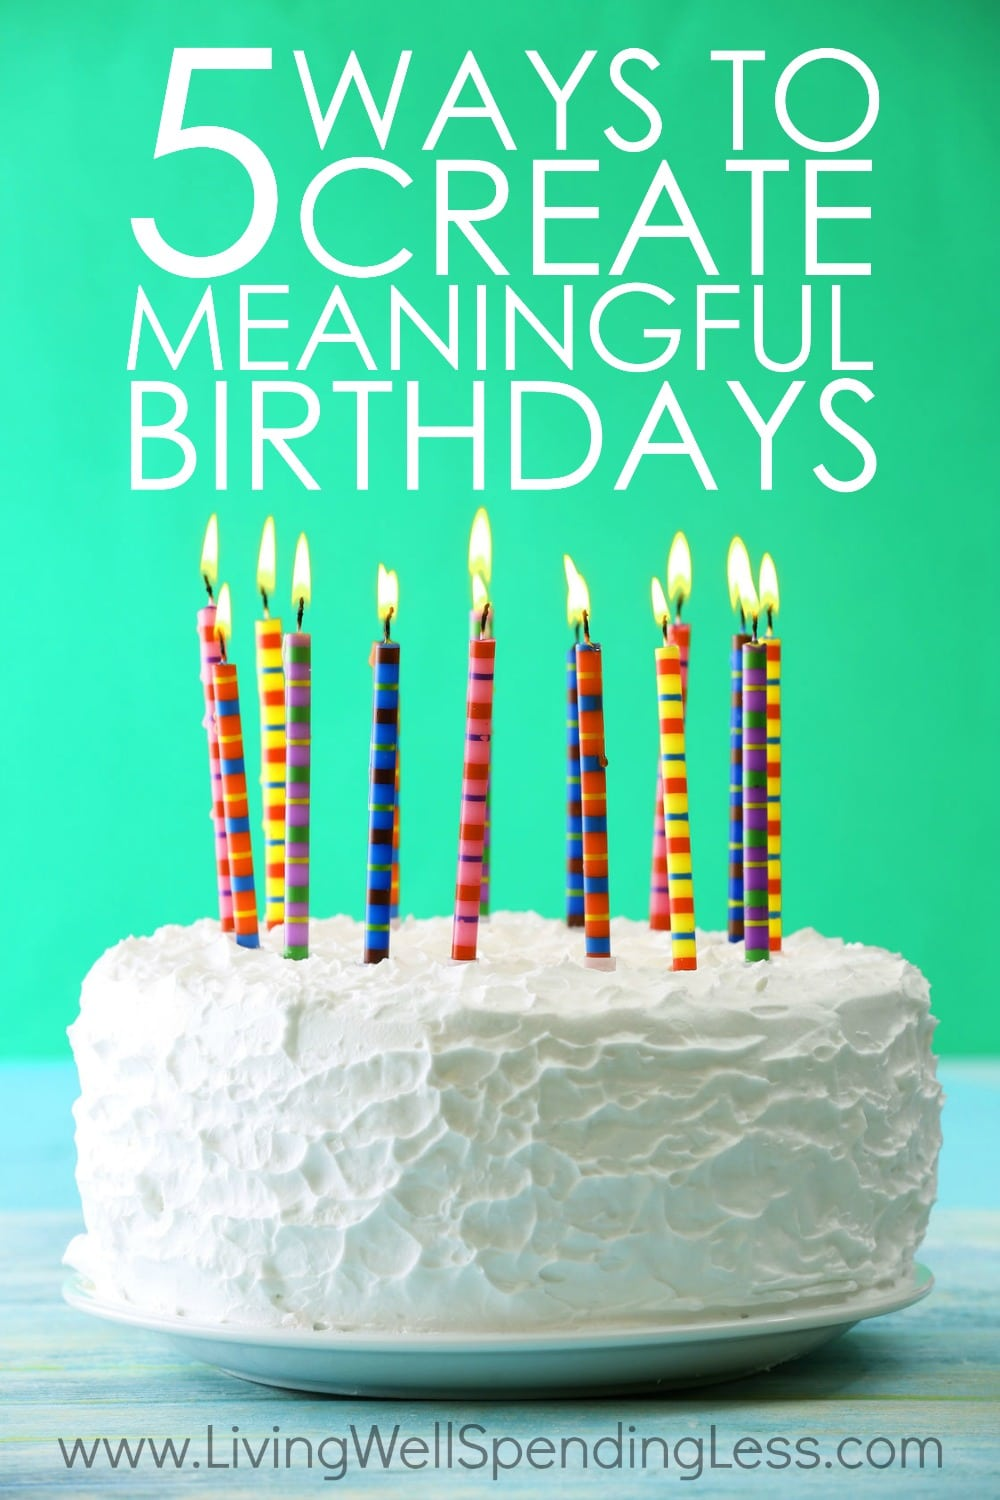 Meaningful Birthdays Vertical